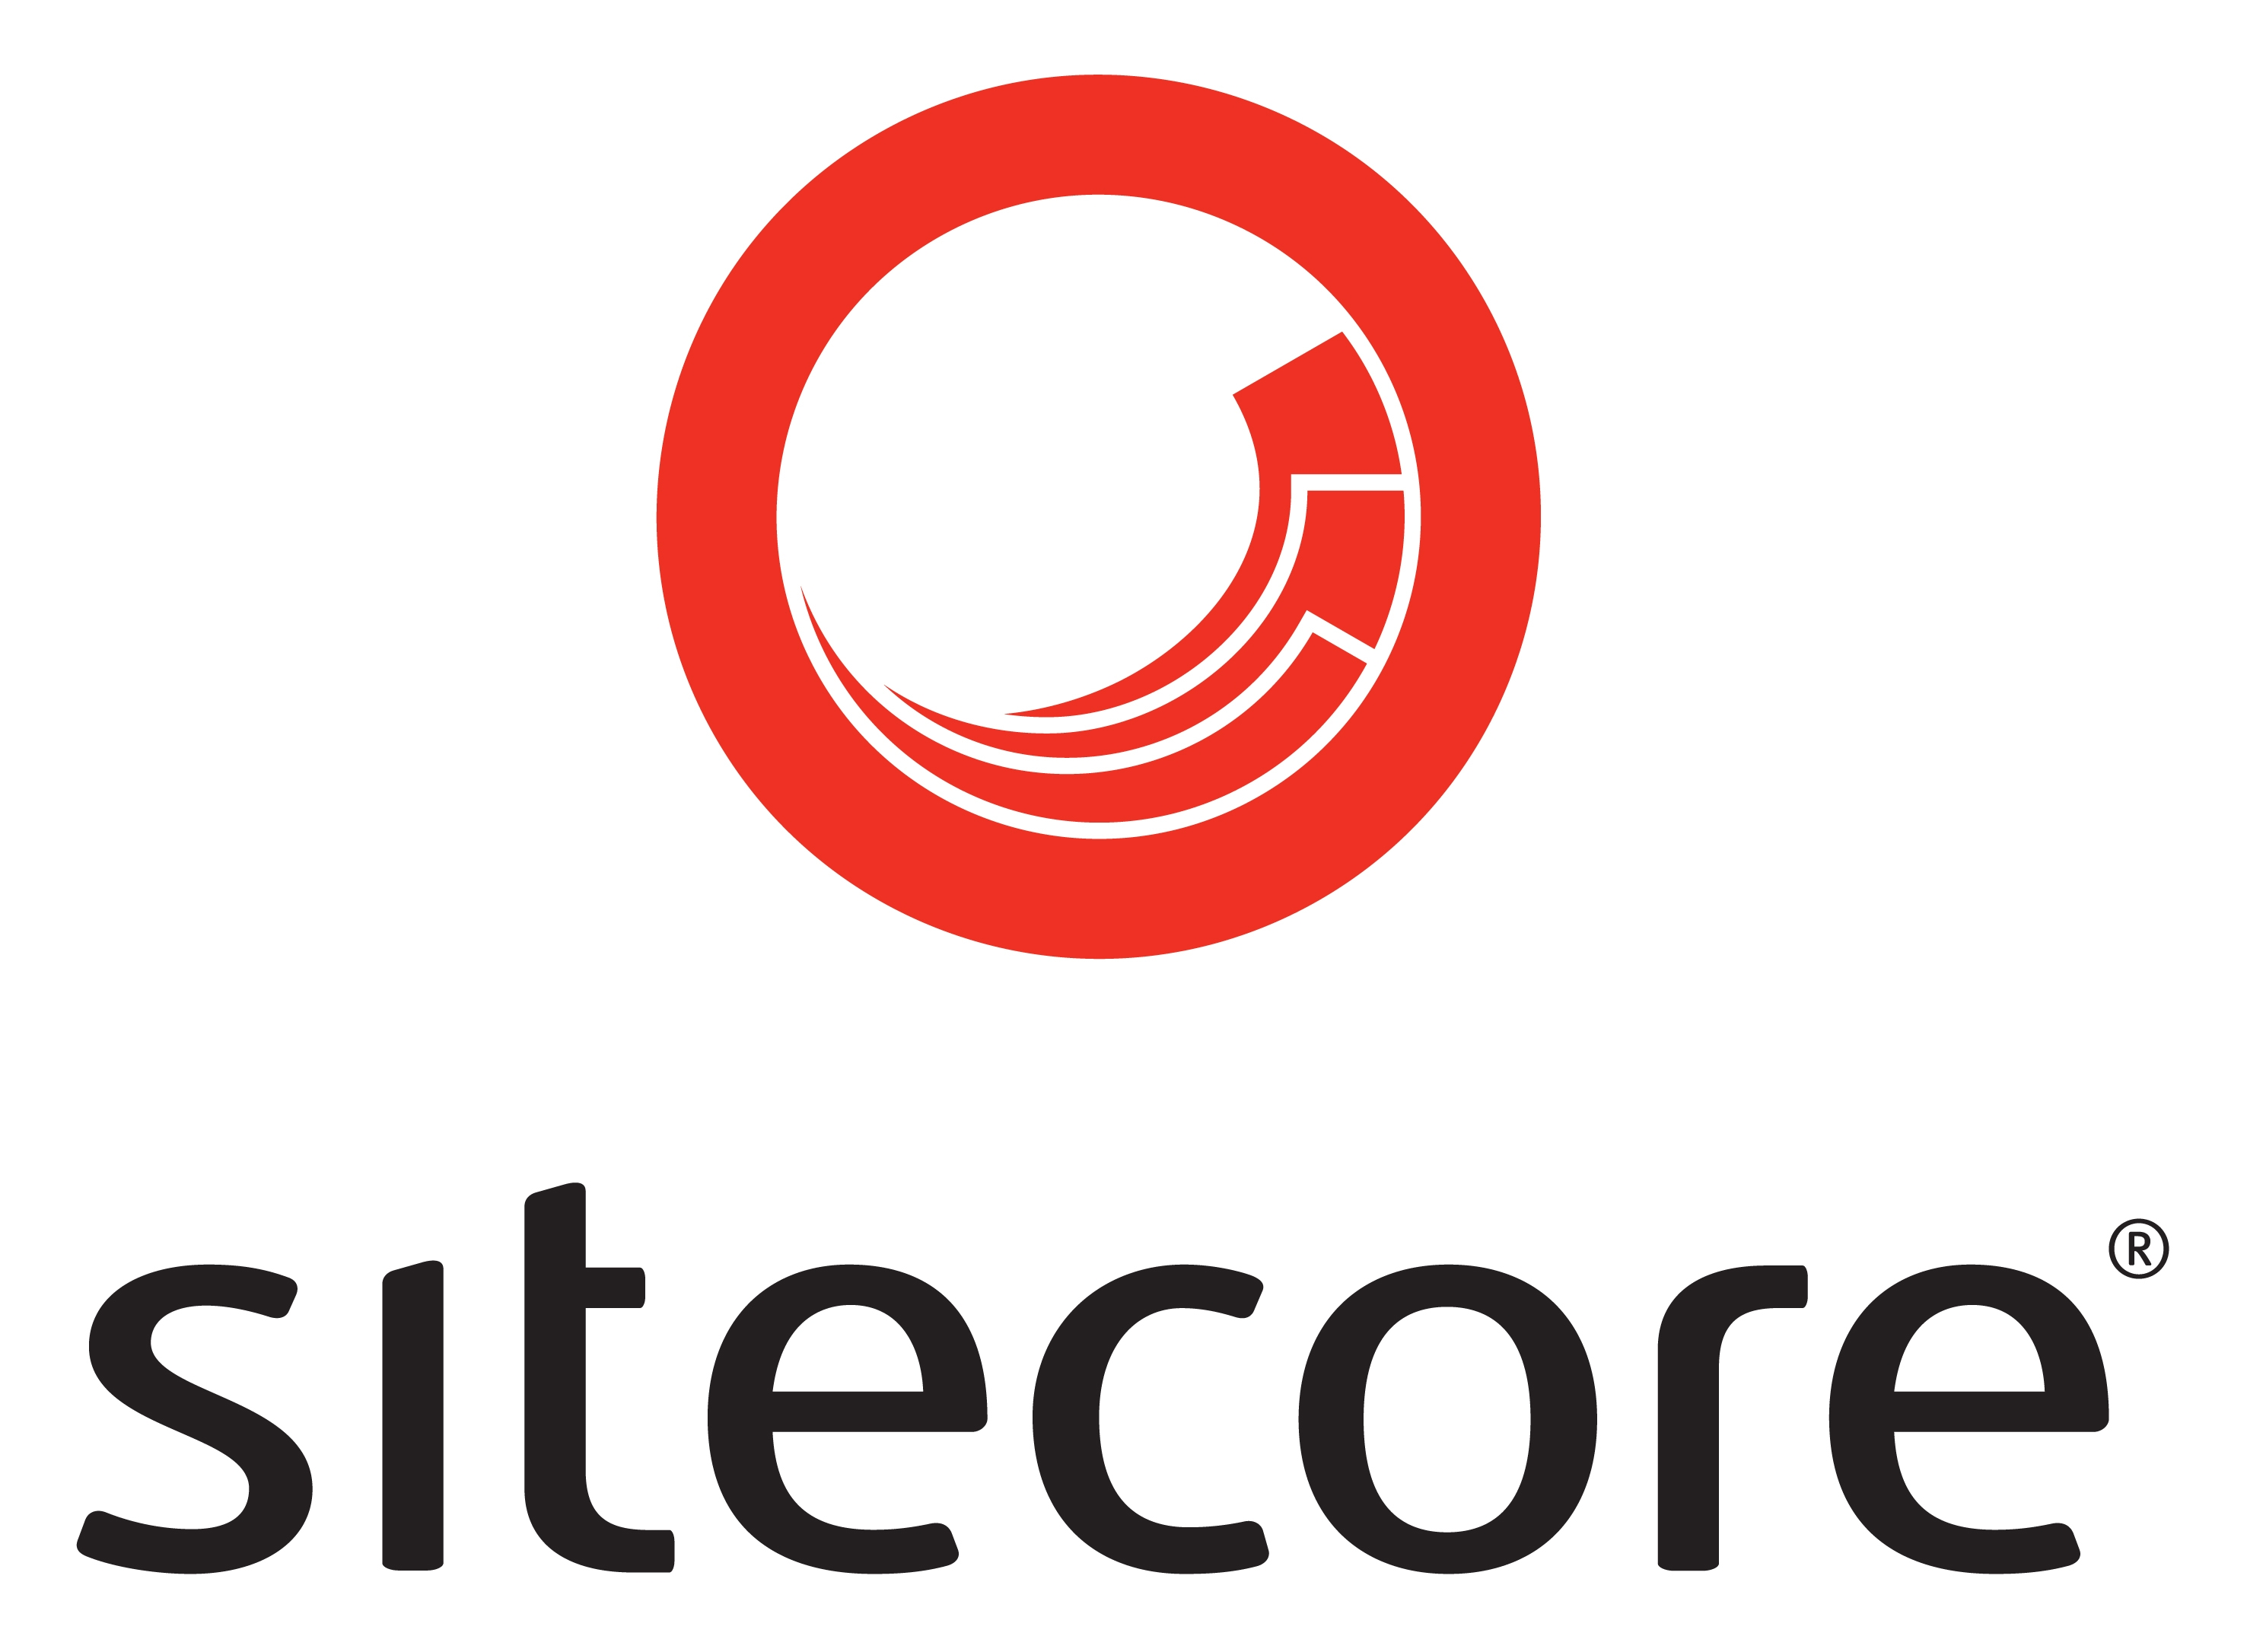 Sitecore-opdrachtgever-van-lyncwise-executive-search-&-interim